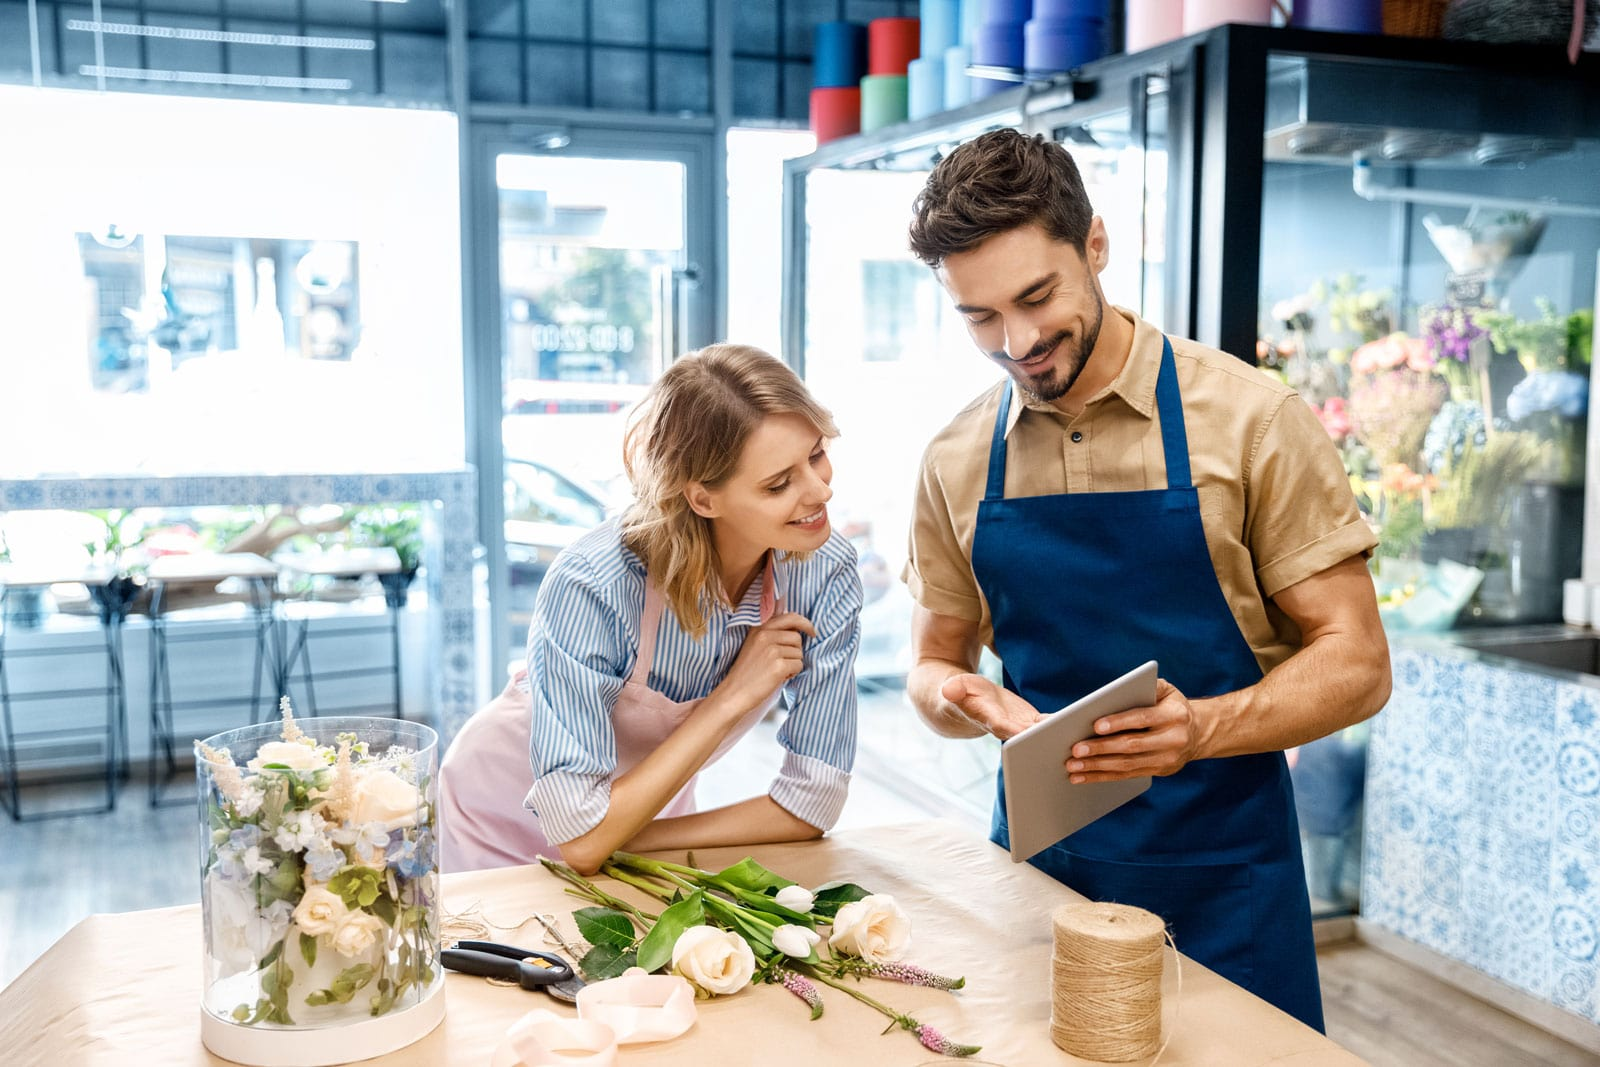 What Five HVAC Needs Should Florists Keep in Mind for Their Shops